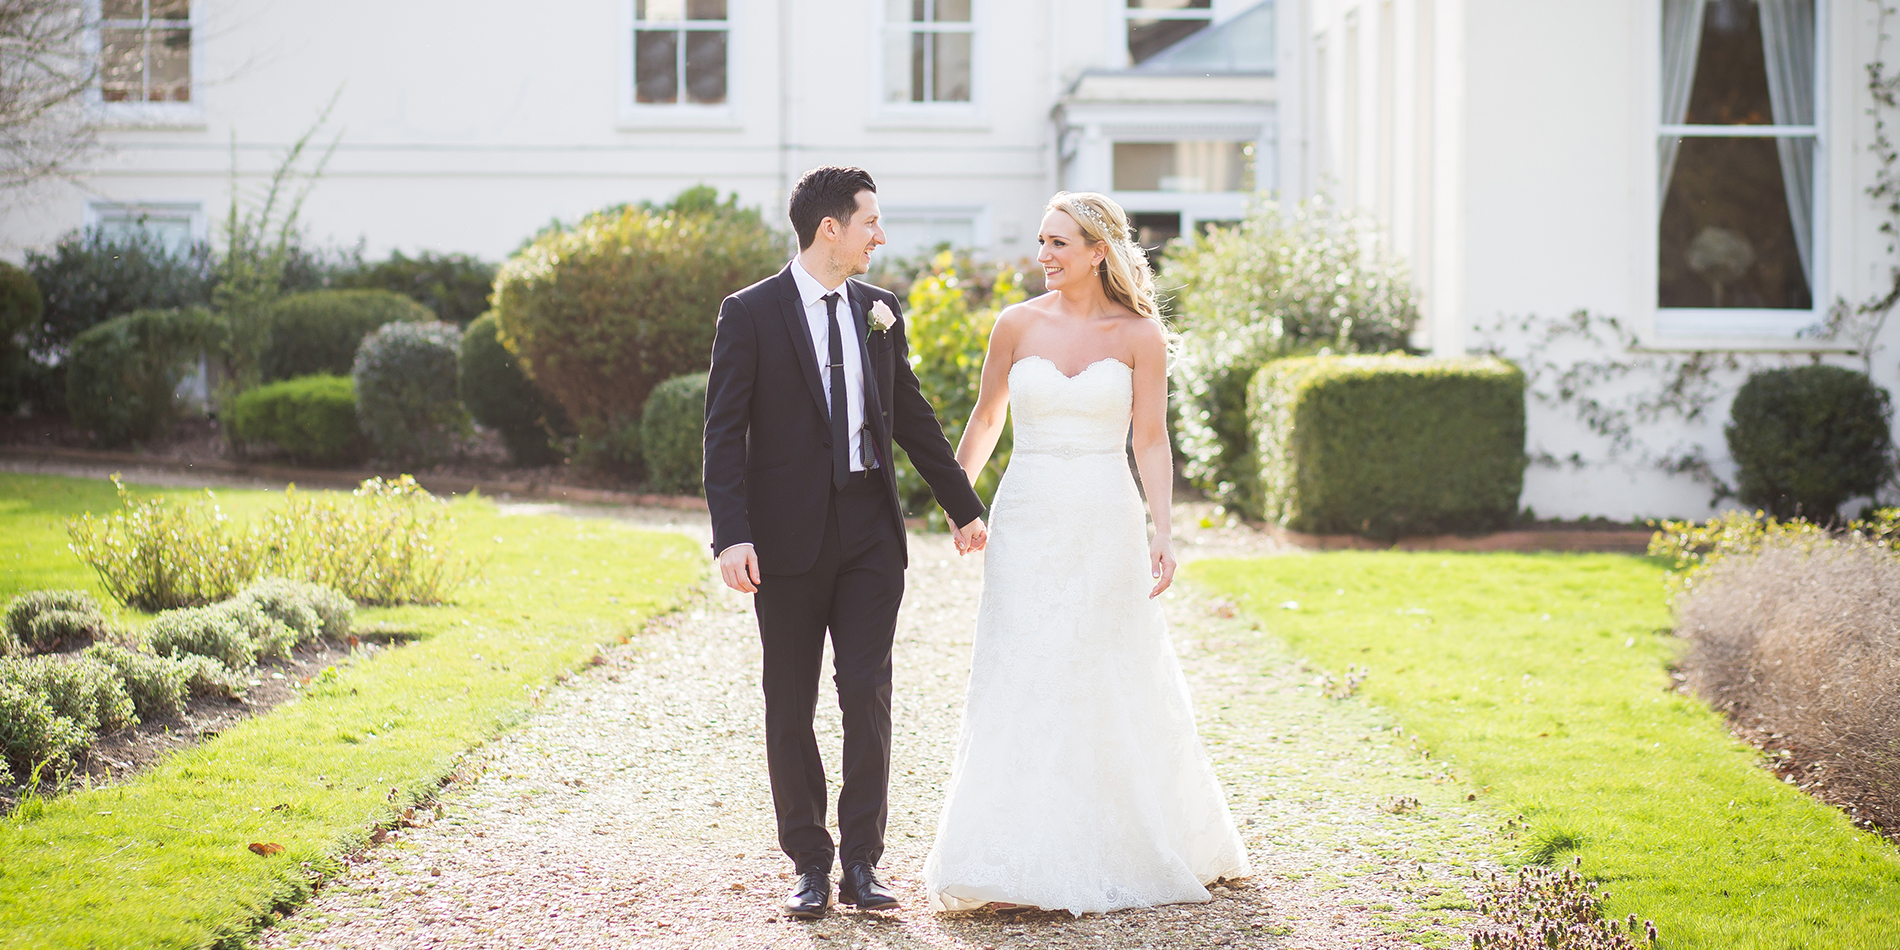 Francesca and Andrew's real life wedding at Morden Hall